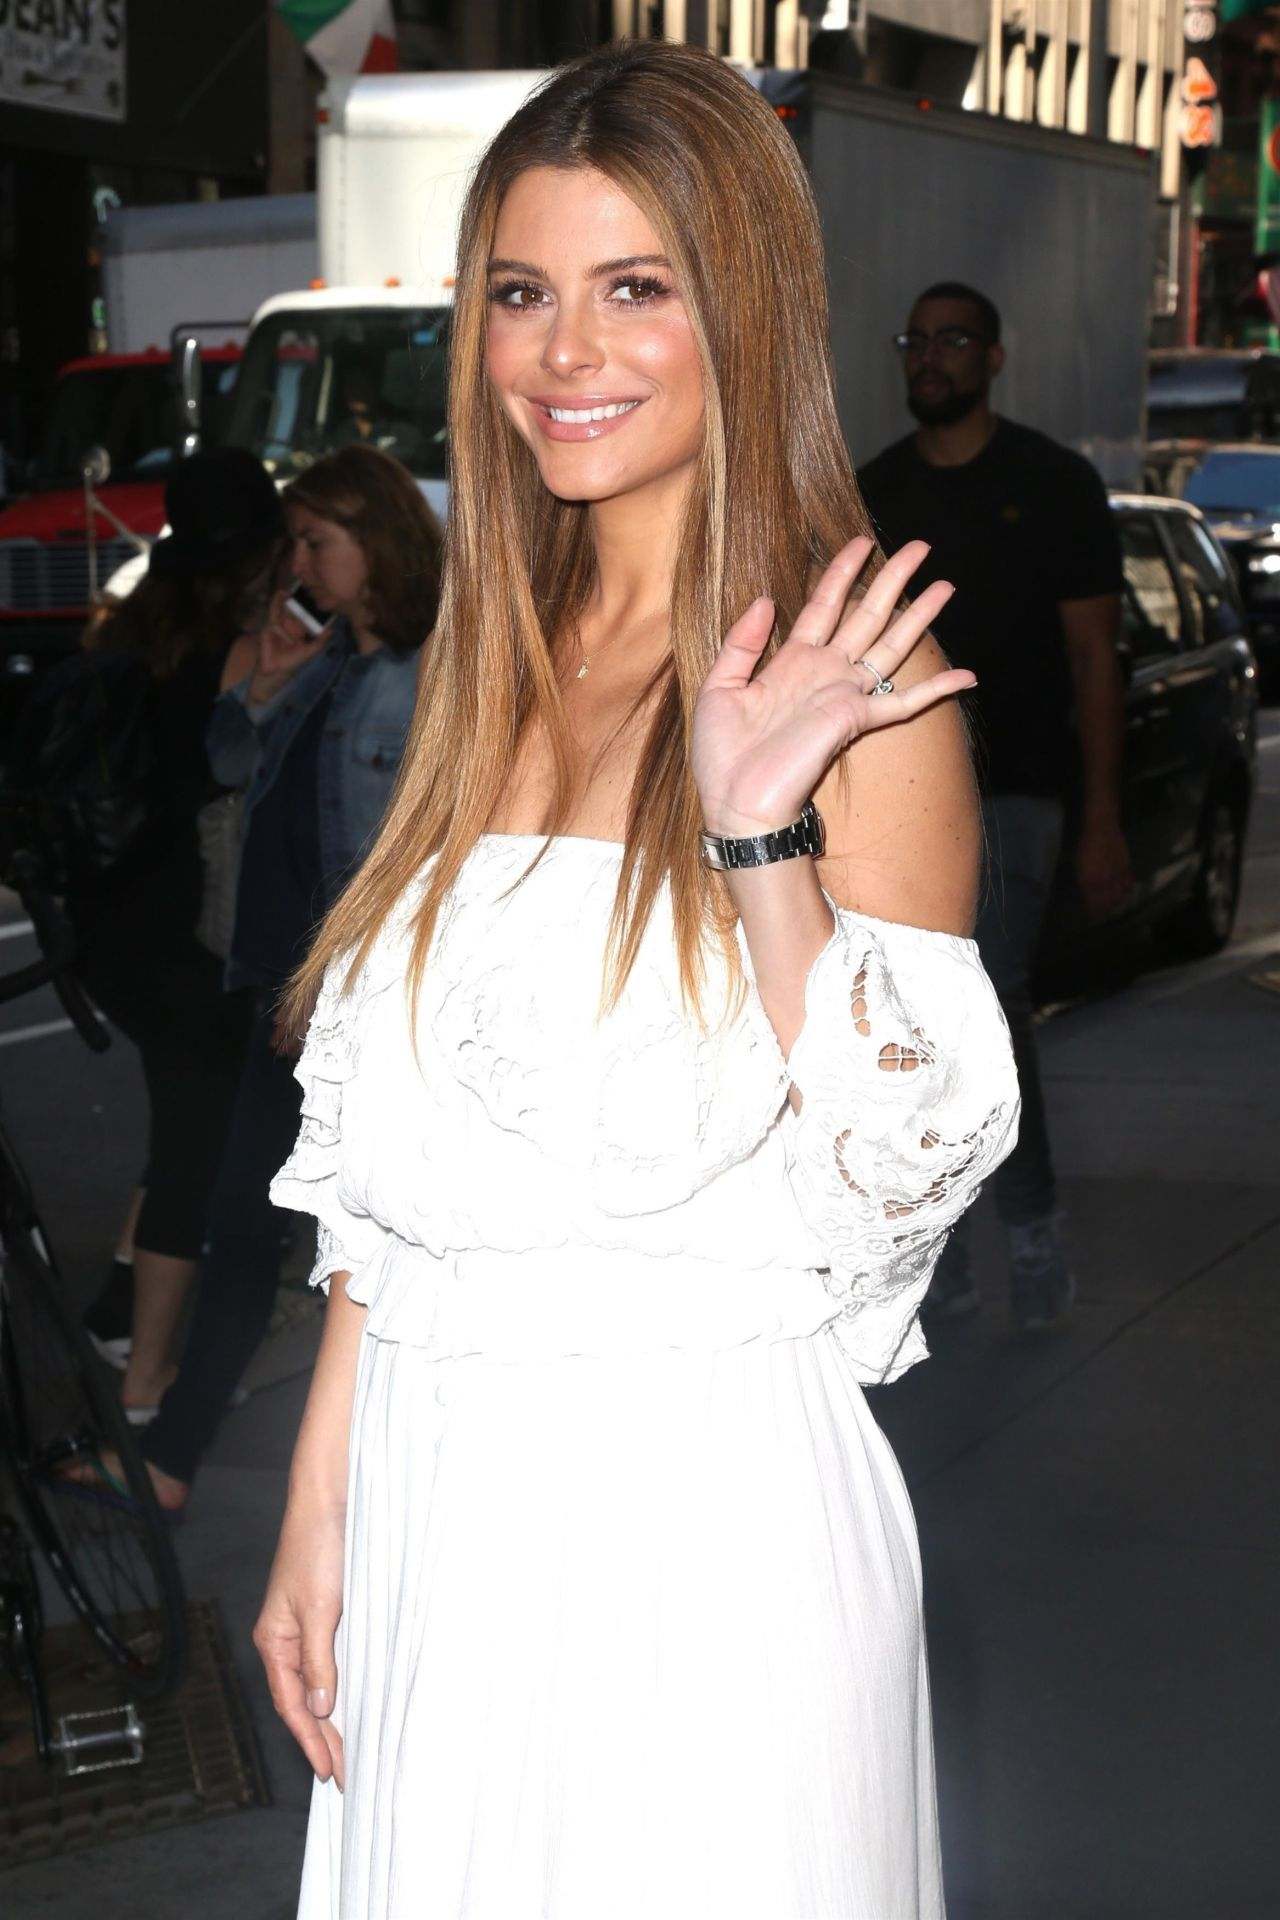 Maria Menounos Arriving To Appear On Quot Today Quot Show In Nyc